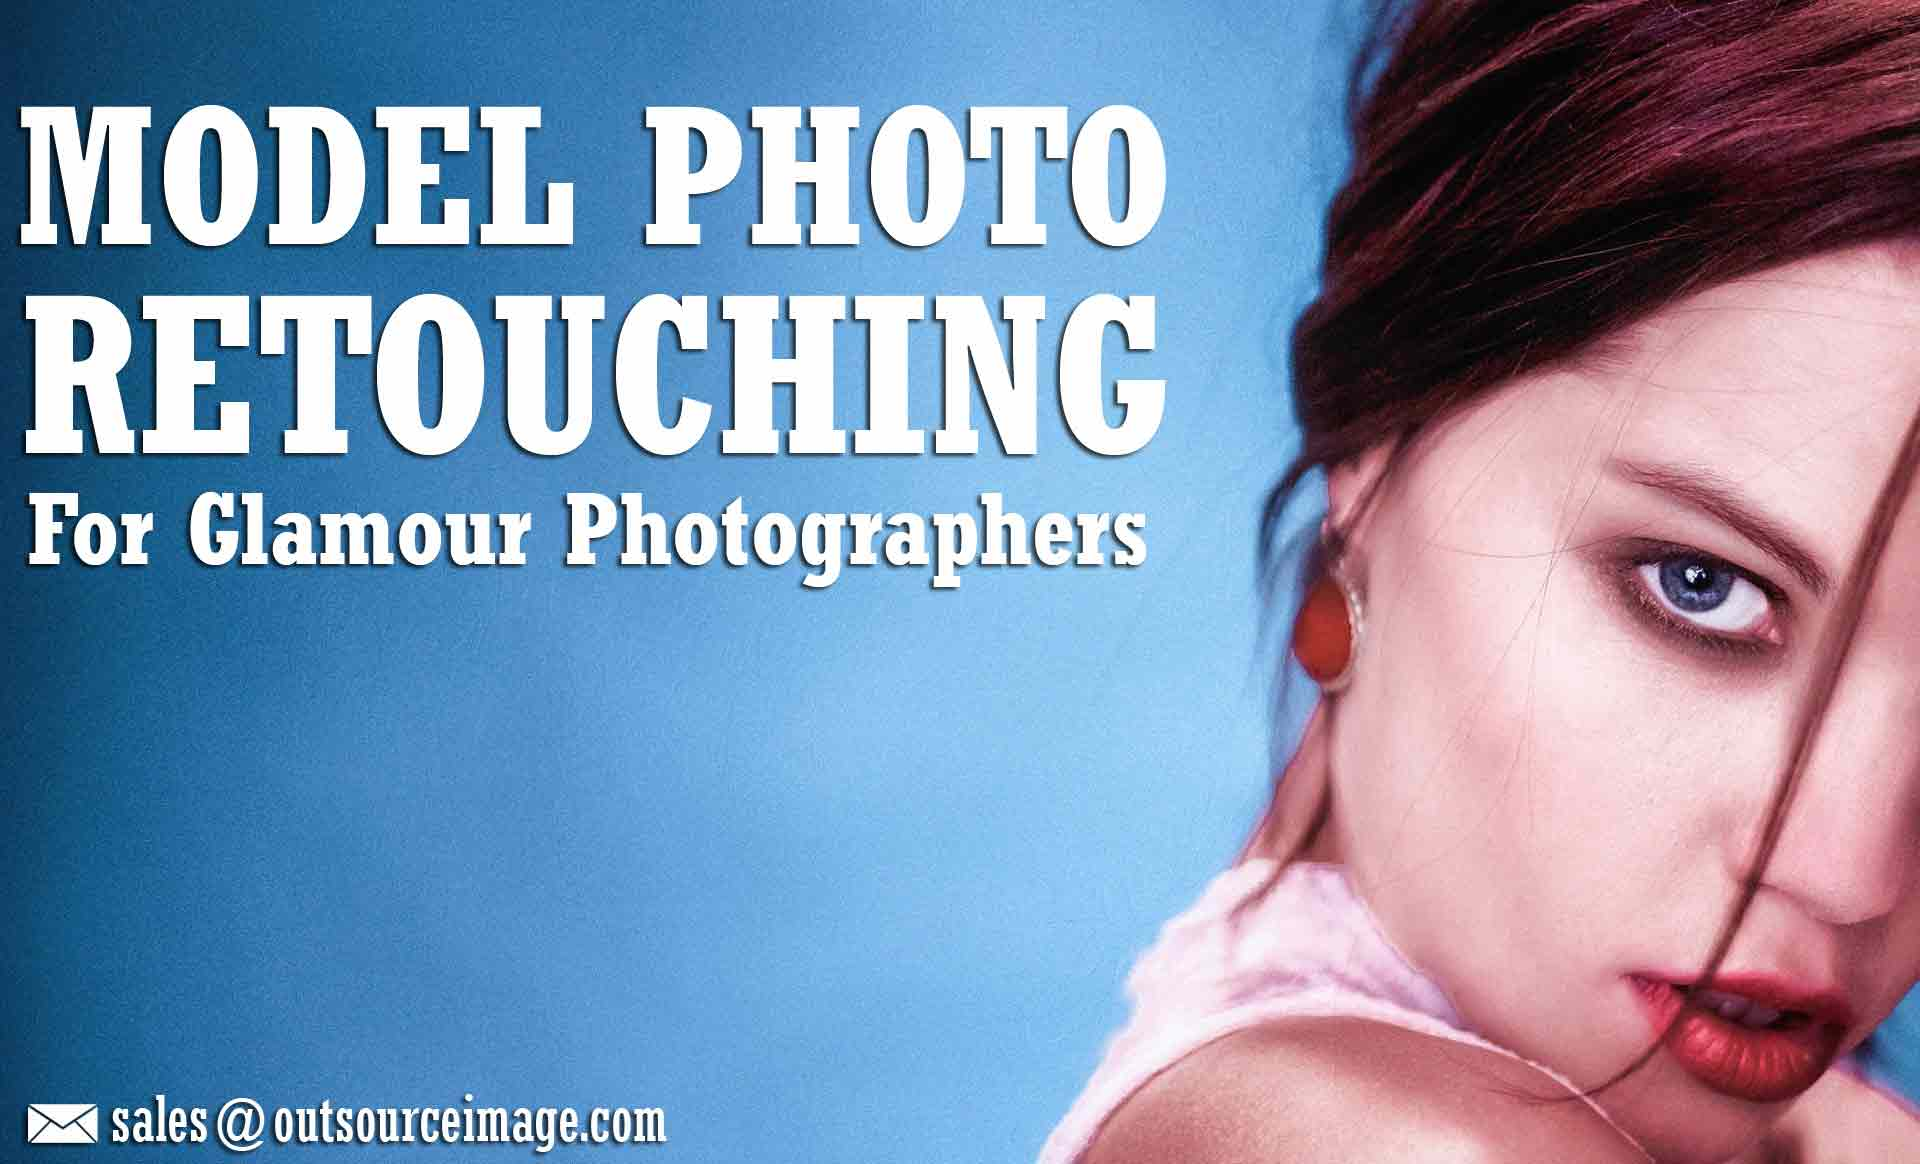 Model Photo Retouching Services | High-End Glamour Retouch Services